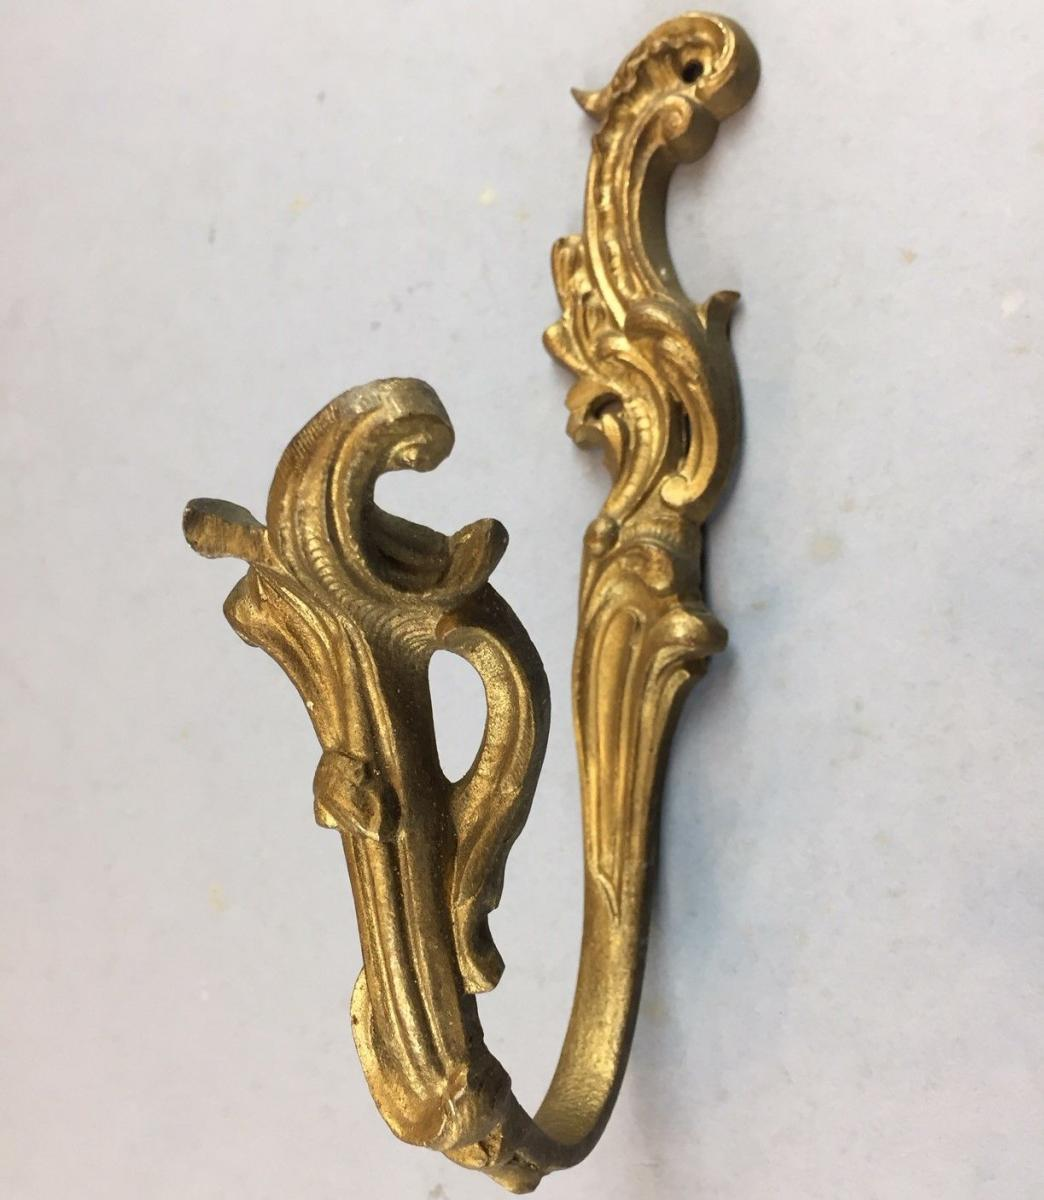 Antique Bronze Curtain Tie Backs Pair Of Antique Gilded Brass Curtain Tie Backs Bada